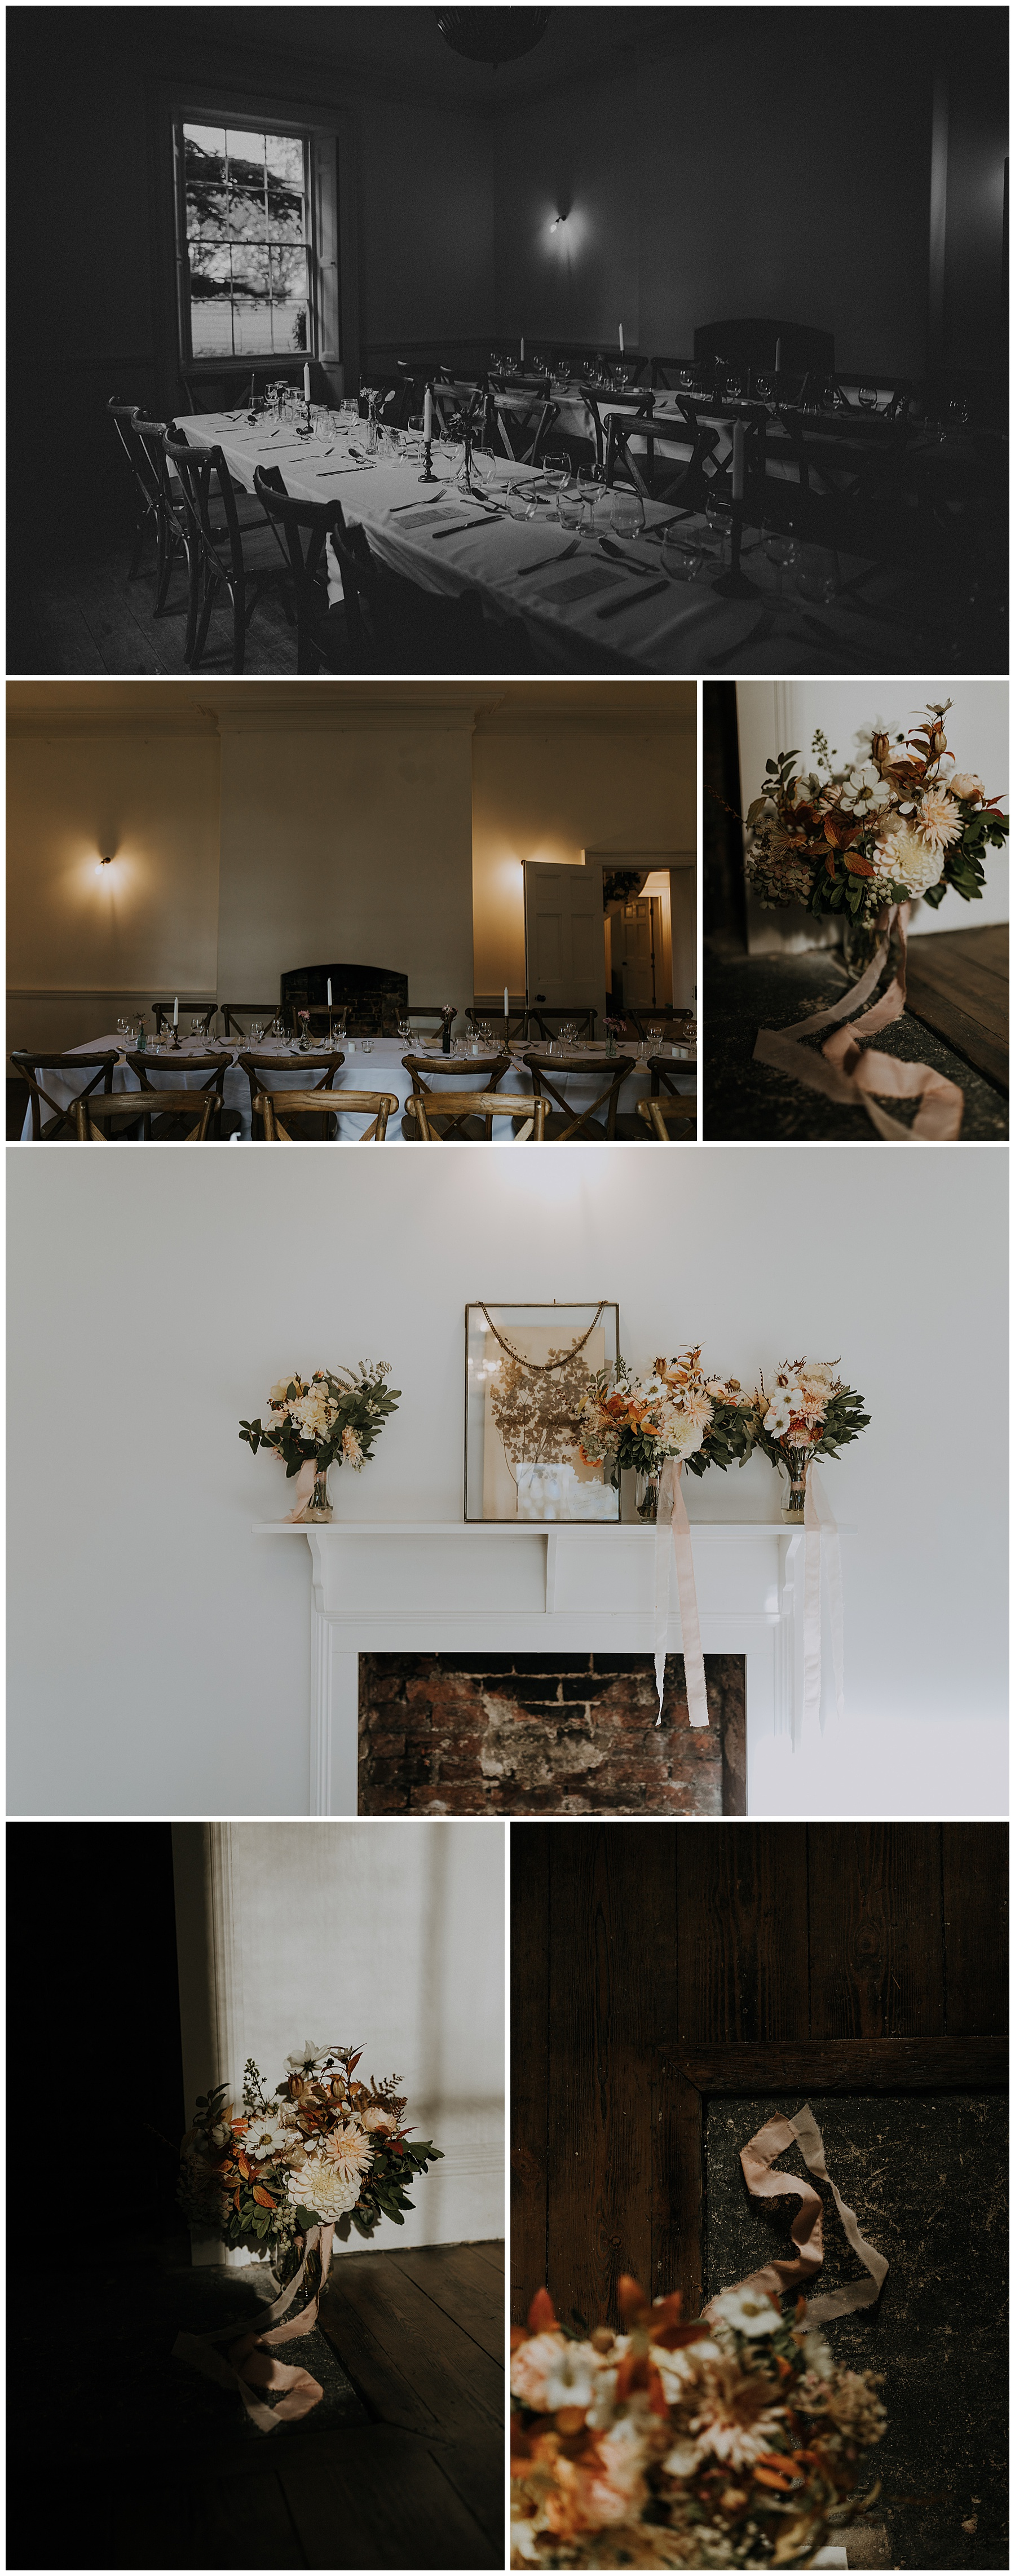 floral decorations sit atop a fireplace